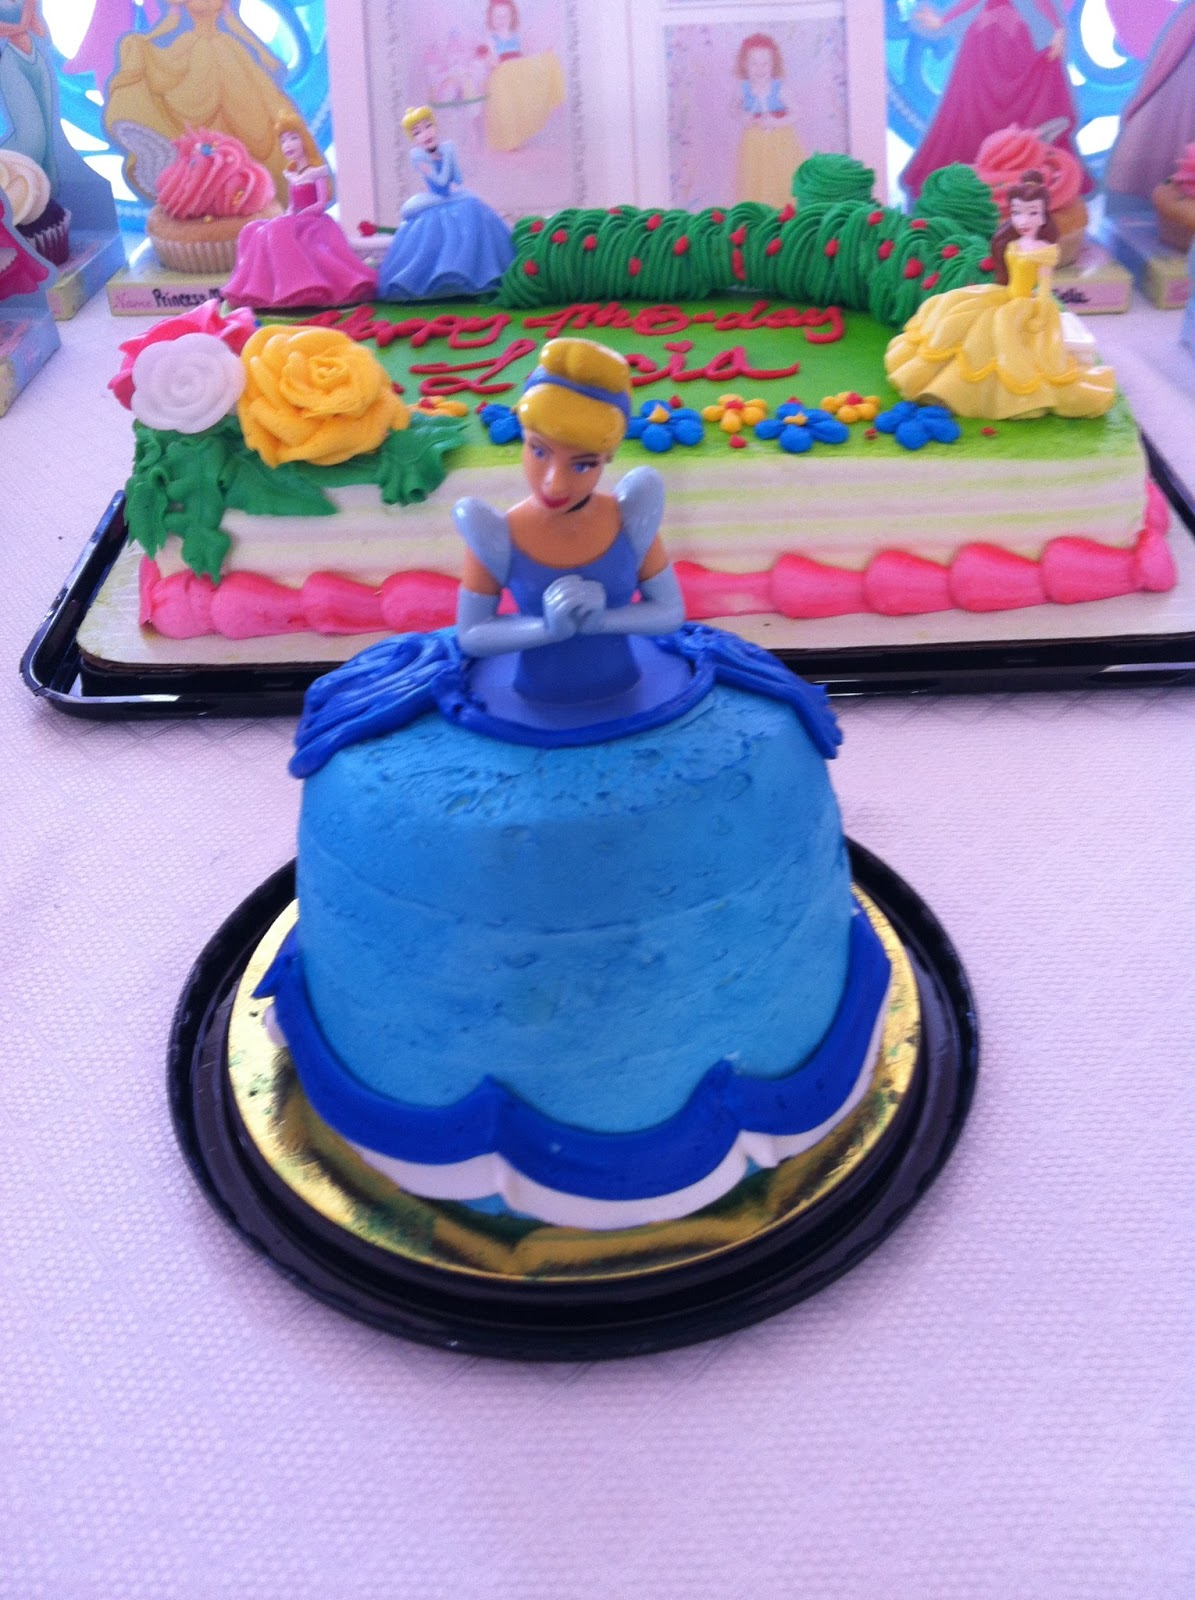 My Little Pony Birthday Cake Safeway Image Inspiration of Cake and